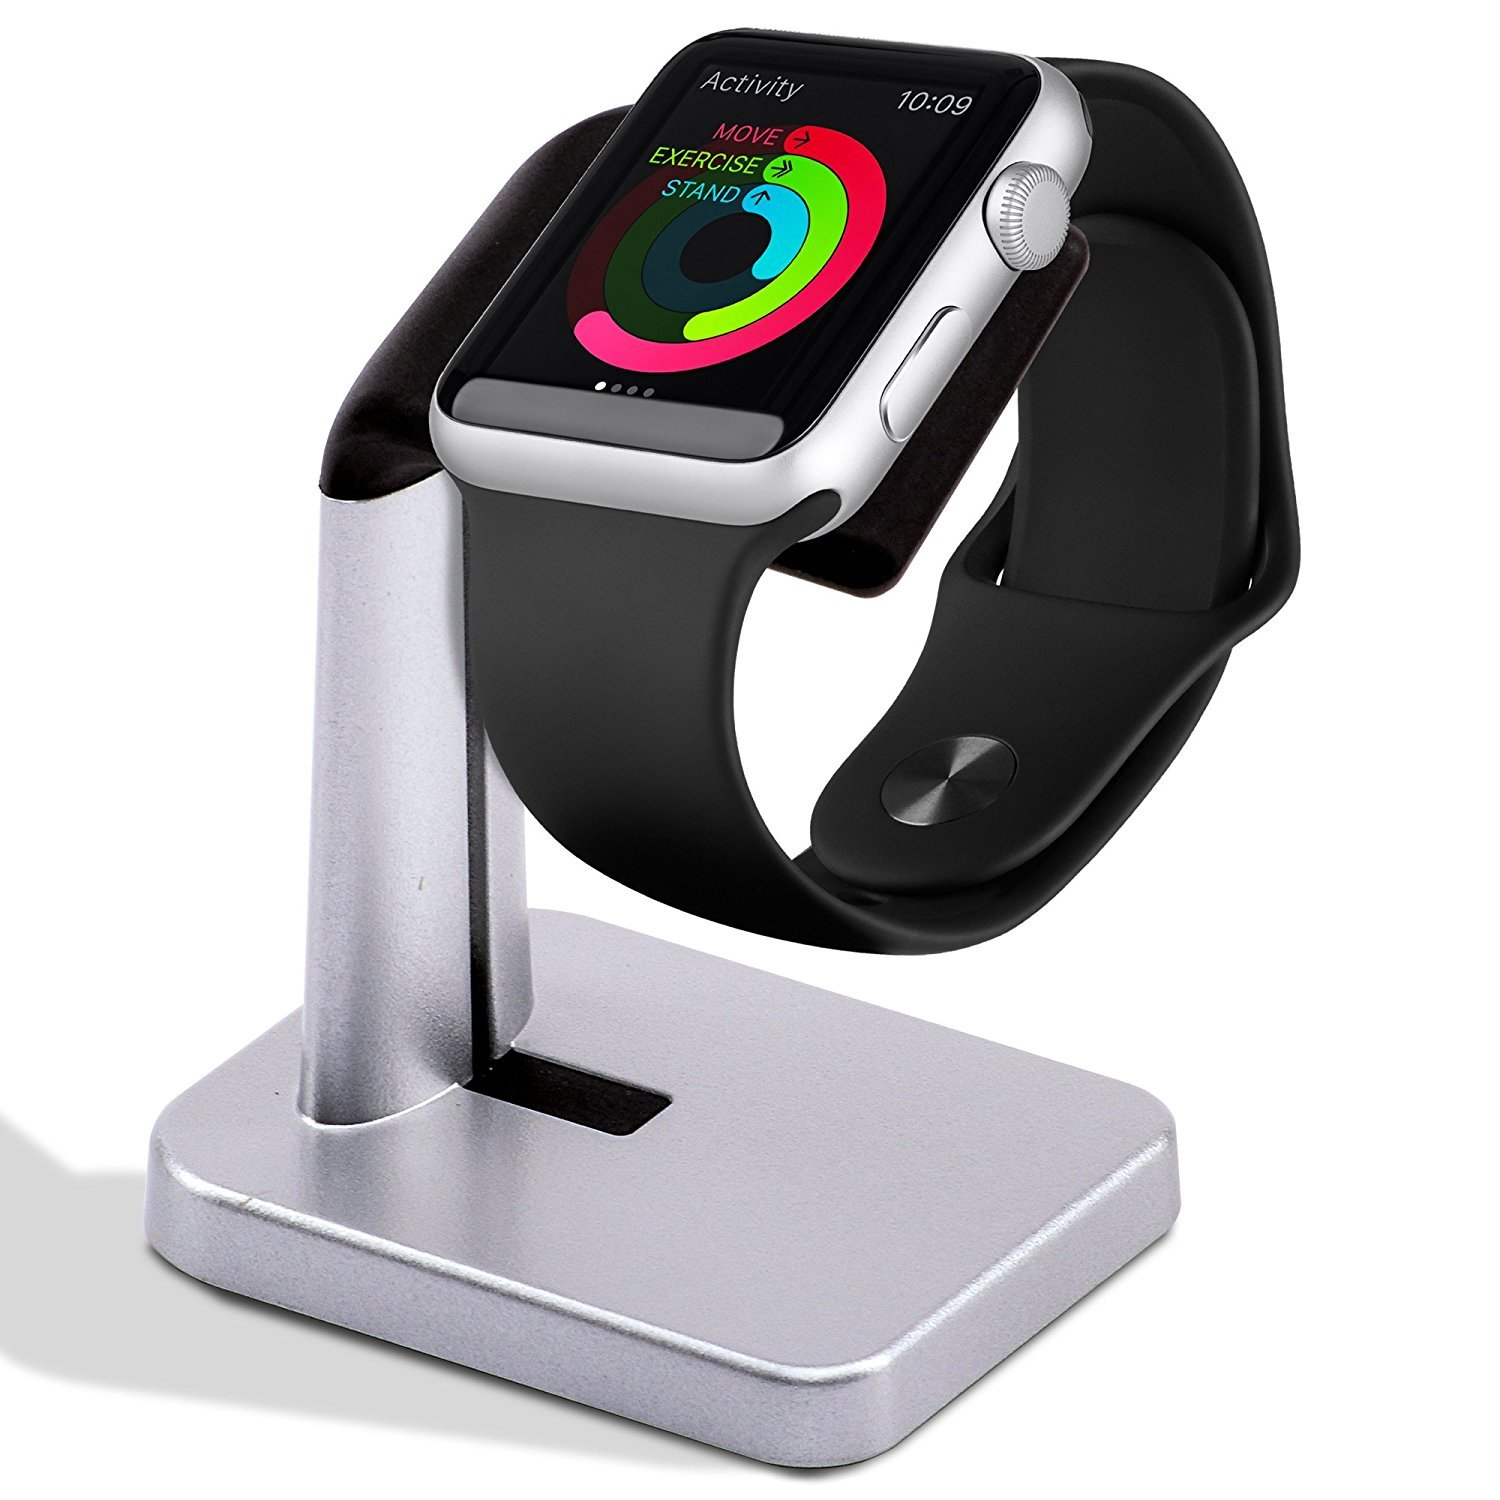 MELKIOX Watch Charging Stand Compatible with Apple iWatch Charger Series 4 / Series 3 / Series 2 / Series 1 44mm, 42mm, 40mm, 38mm. Compact Nightstand Station Base and Travel Accessories Dock.